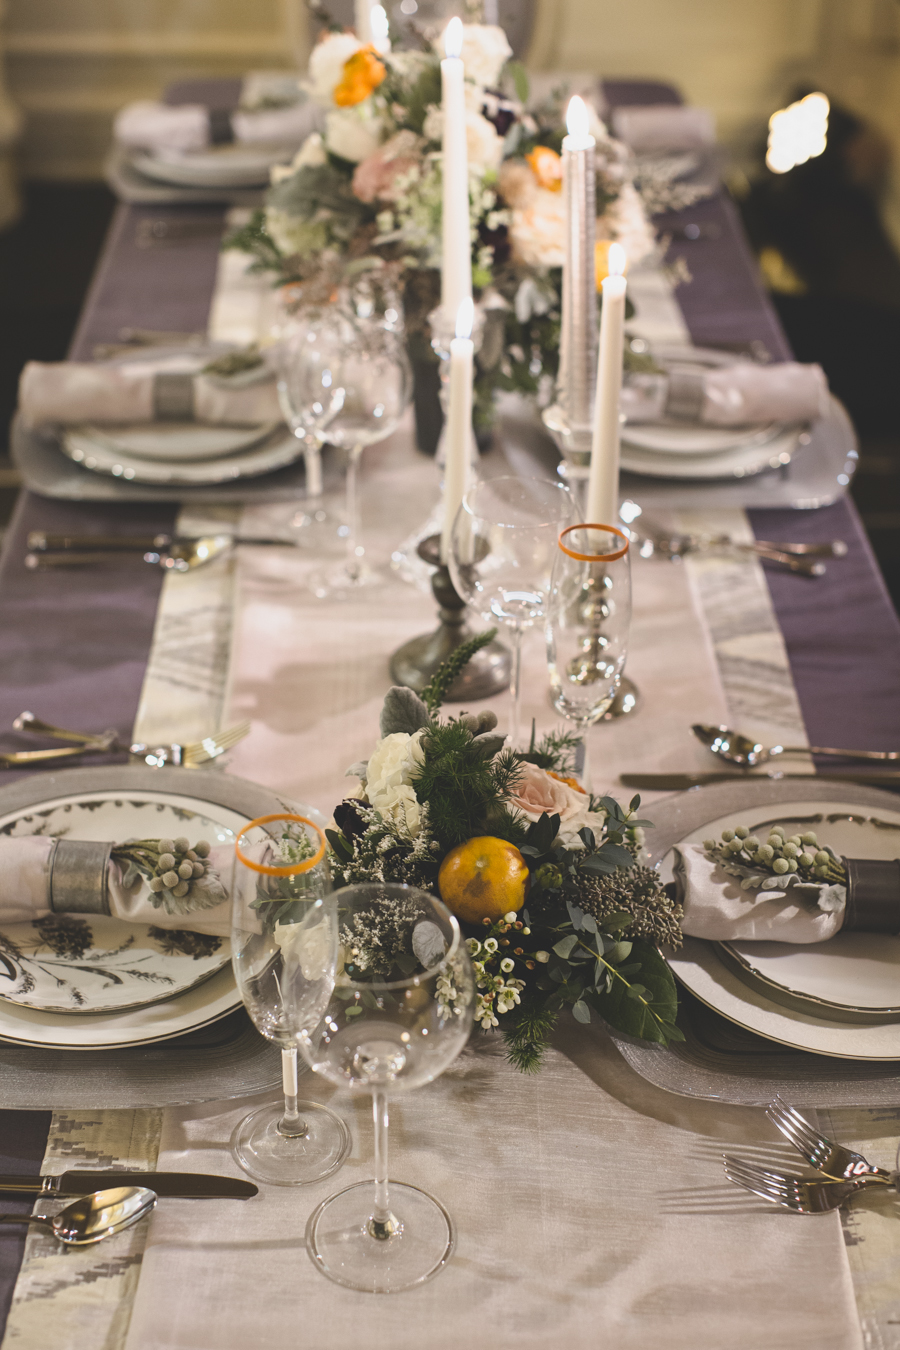 Shades-of-grey-inspired-Connecticut-wedding-fashion-style-black-tie-photographer-BSC-Amy-Champagne-Events-Details_0056.jpg